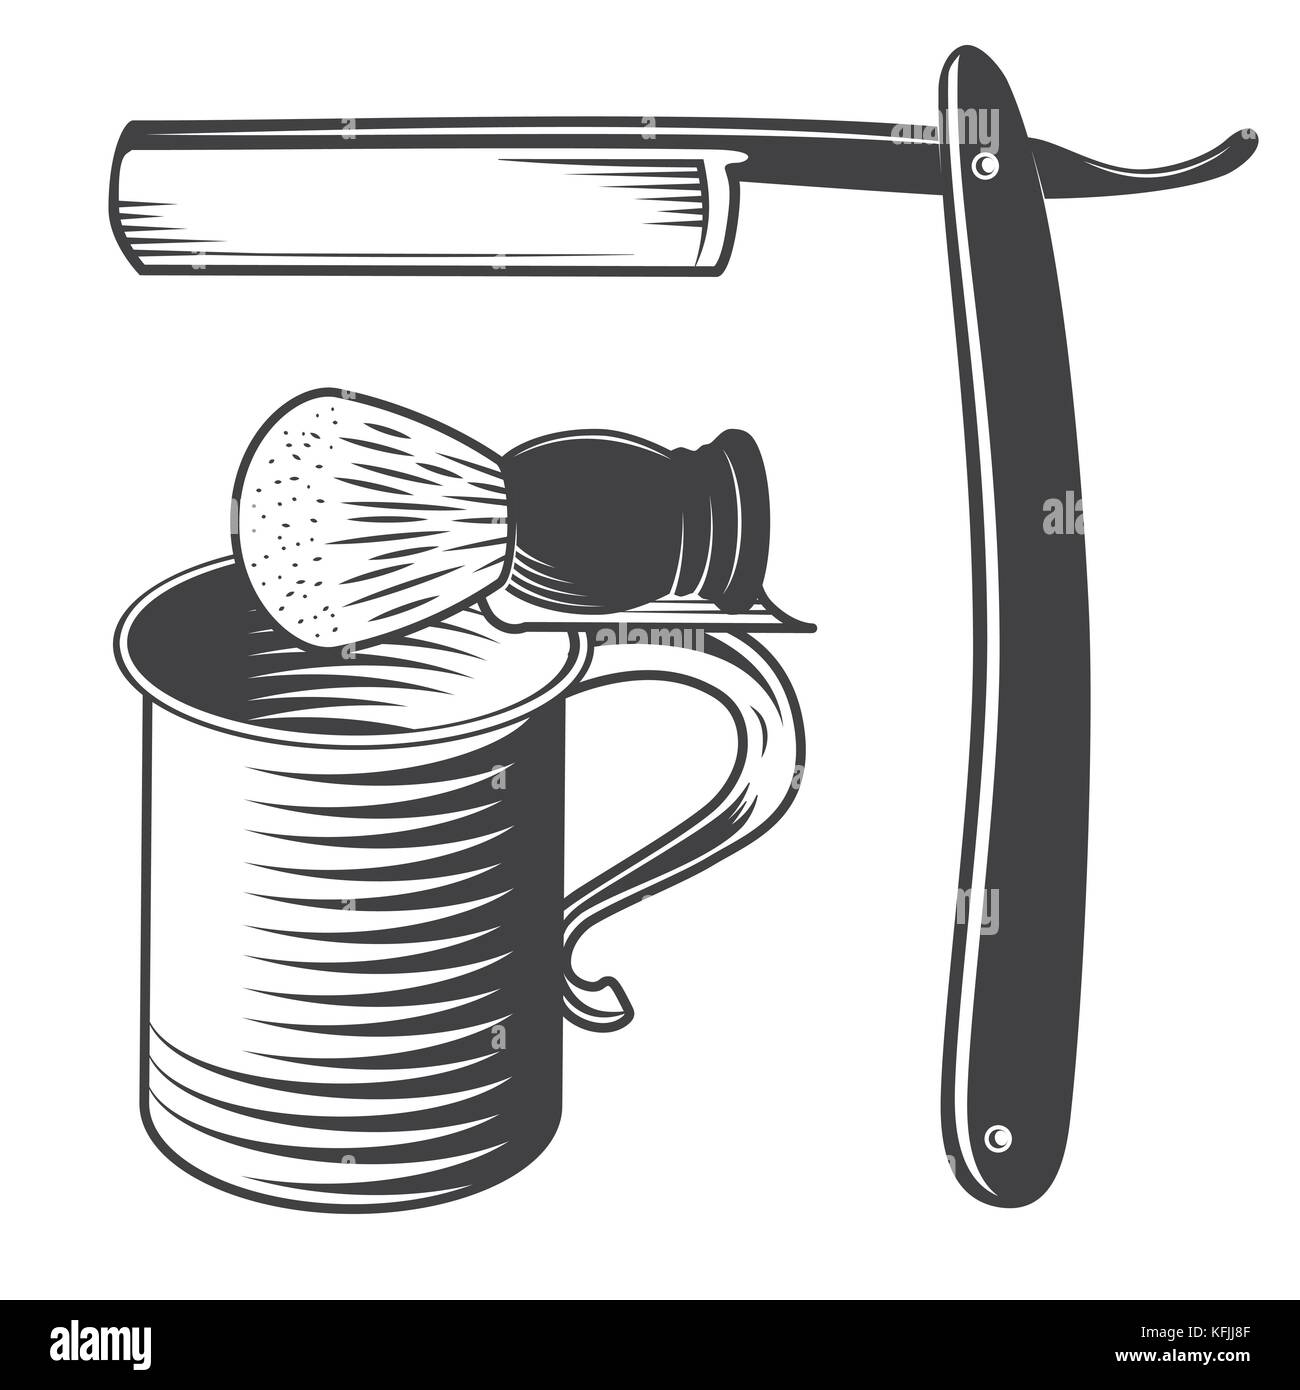 how to use a shaving mug and brush